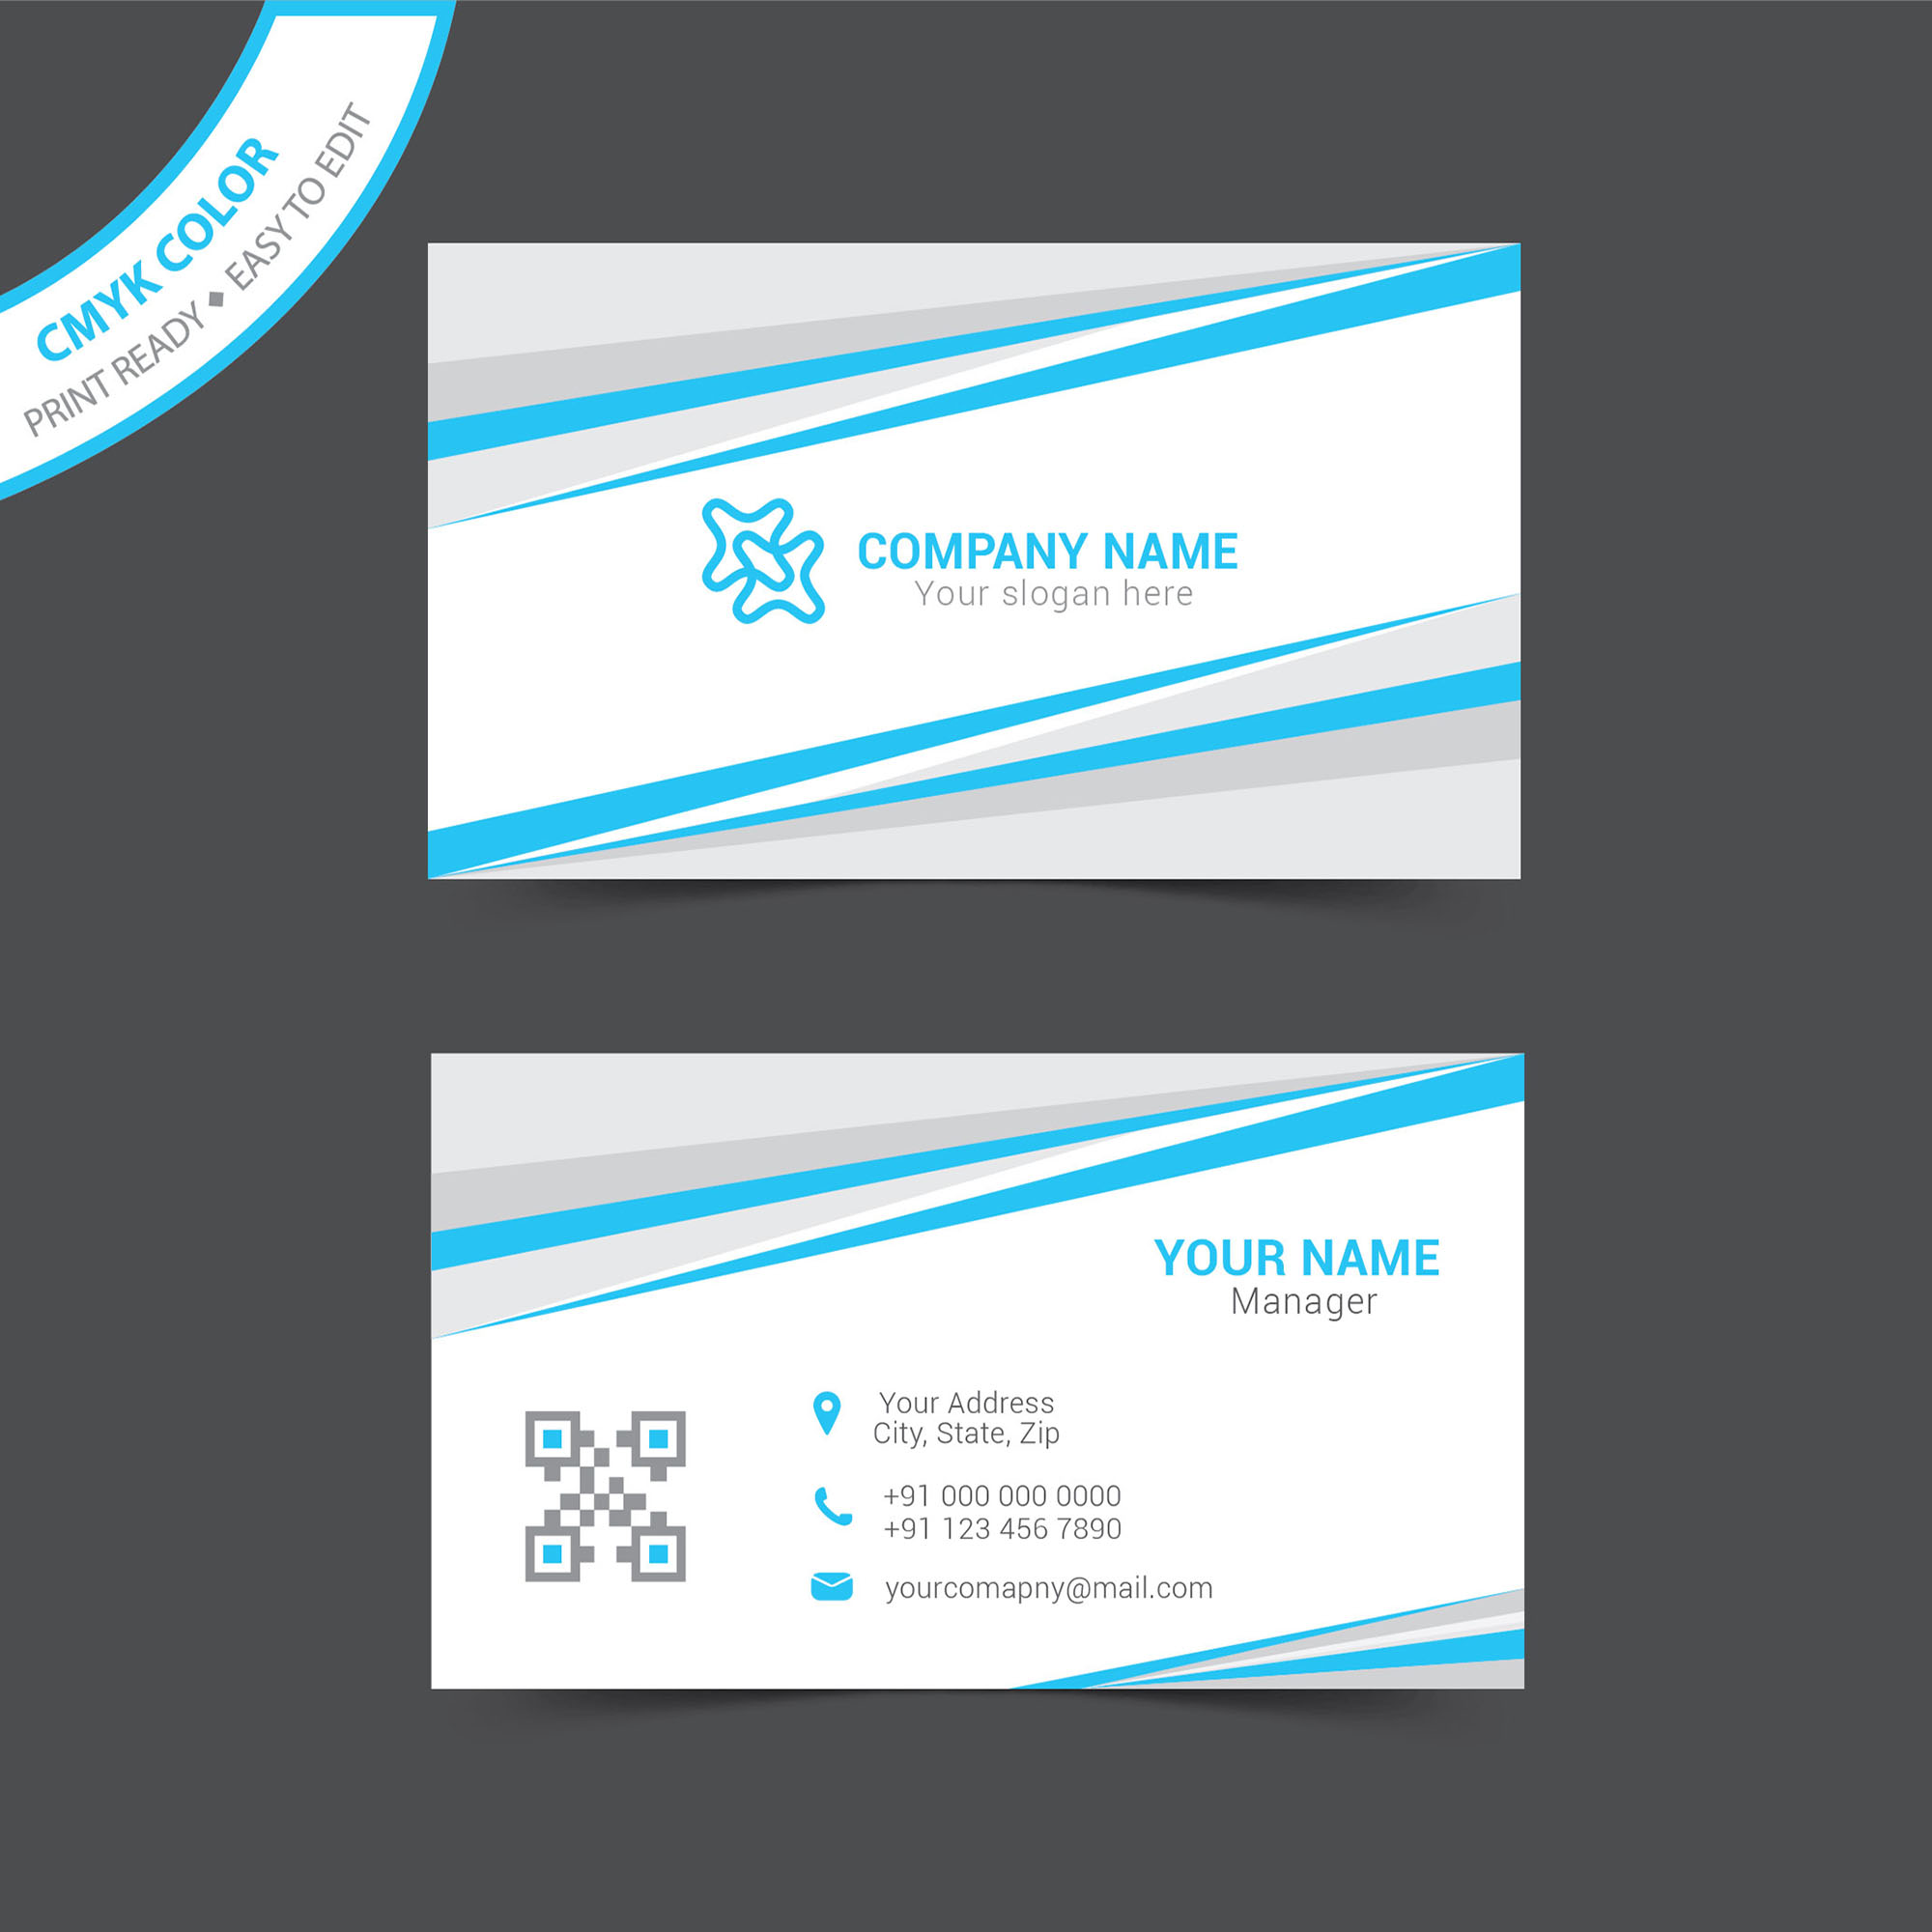 Simple business card template free download wisxi business card business cards business card design business card template design templates flashek Gallery